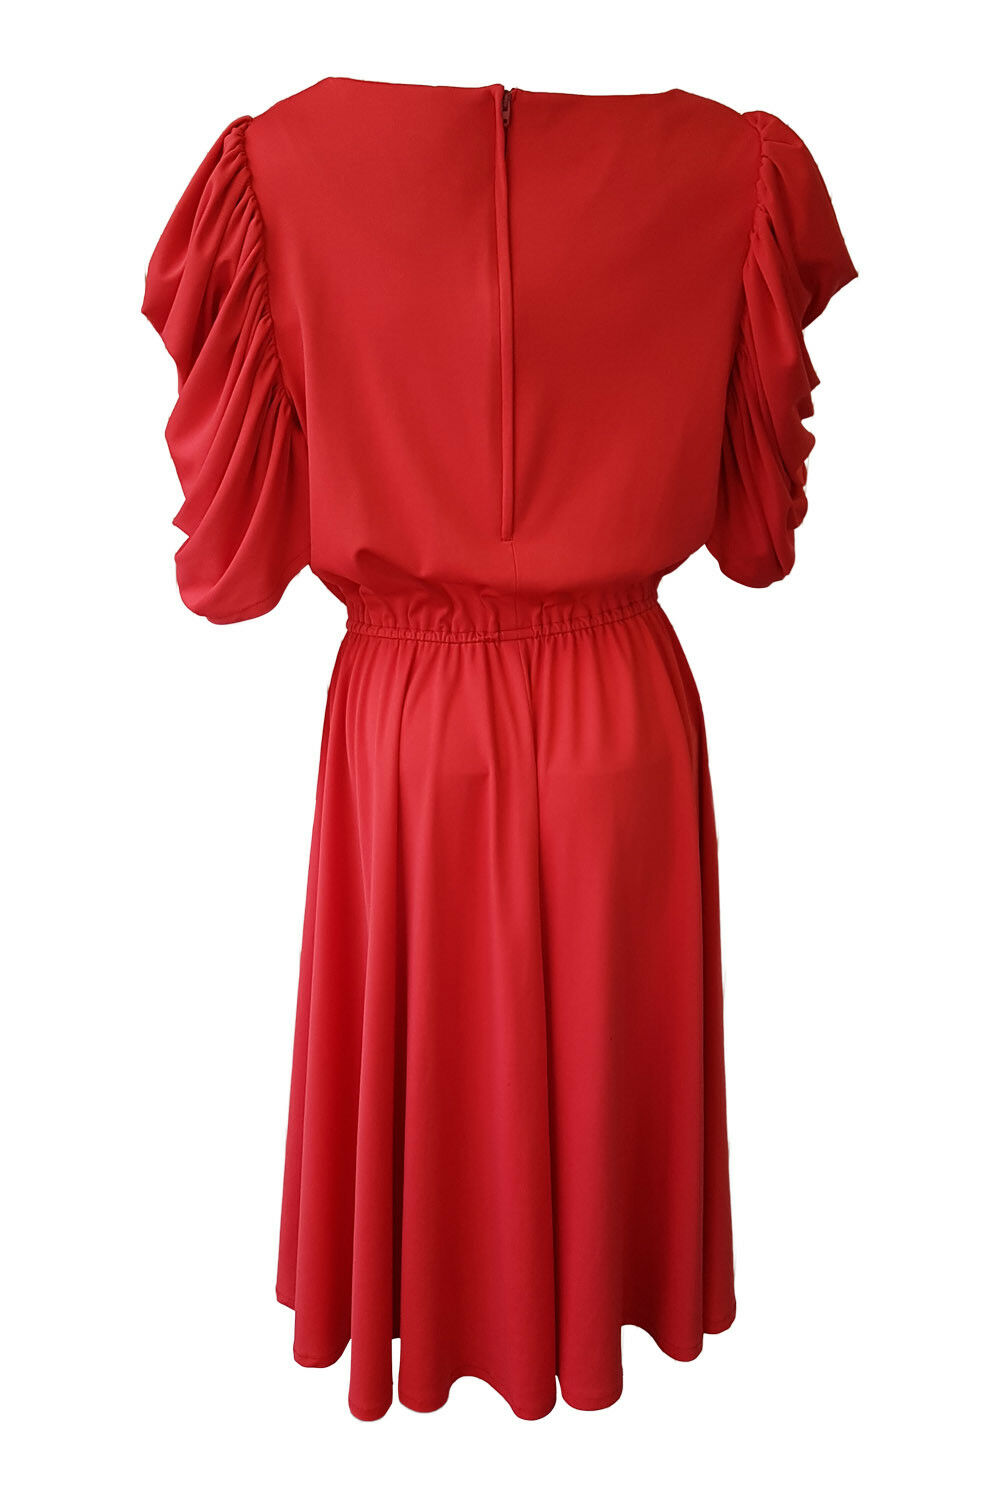 UNBRANDED UNBRANDED UNBRANDED VINTAGE RED PUFFED SLEEVE DIAMANTE BOW DRESS c34a28